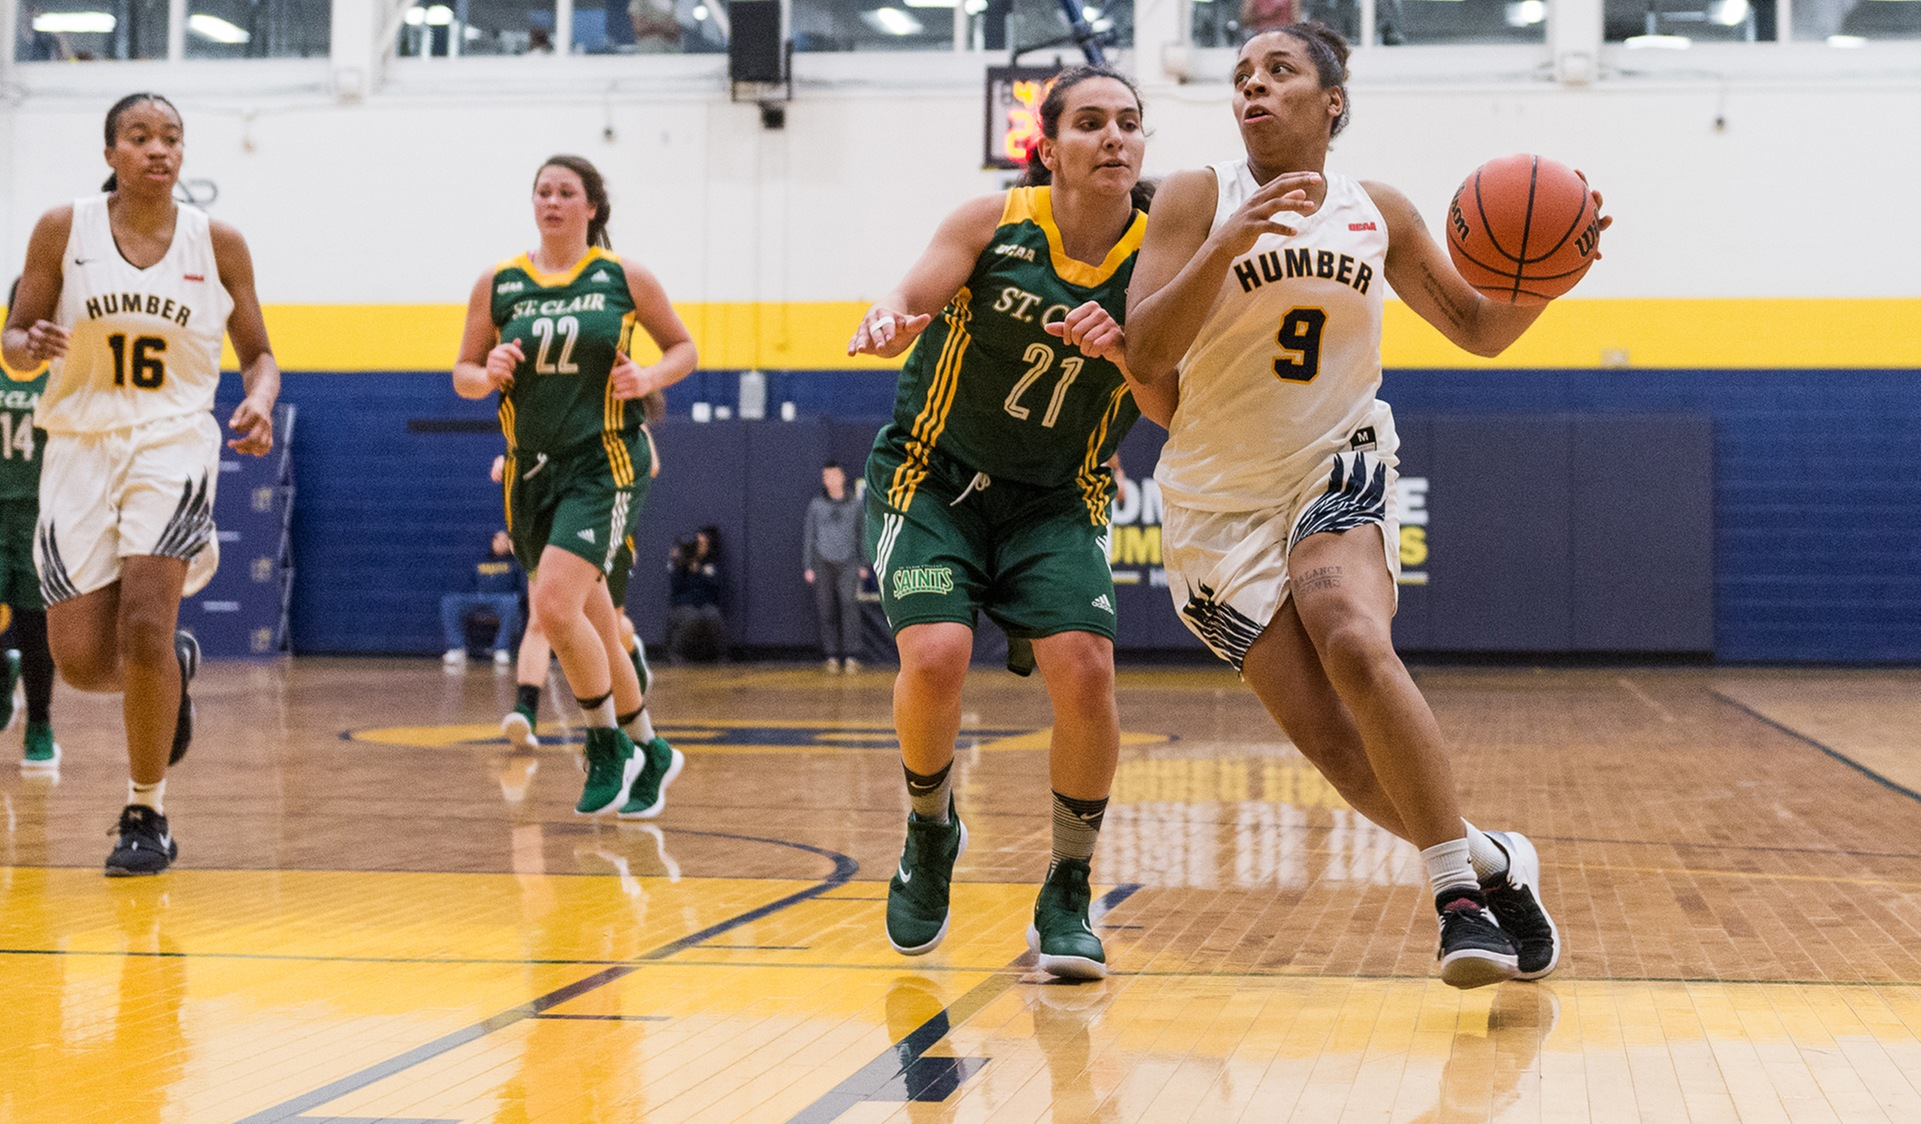 No. 11 WOMEN'S BASKETBALL HOLDS OFF ST. CLAIR, 89-83